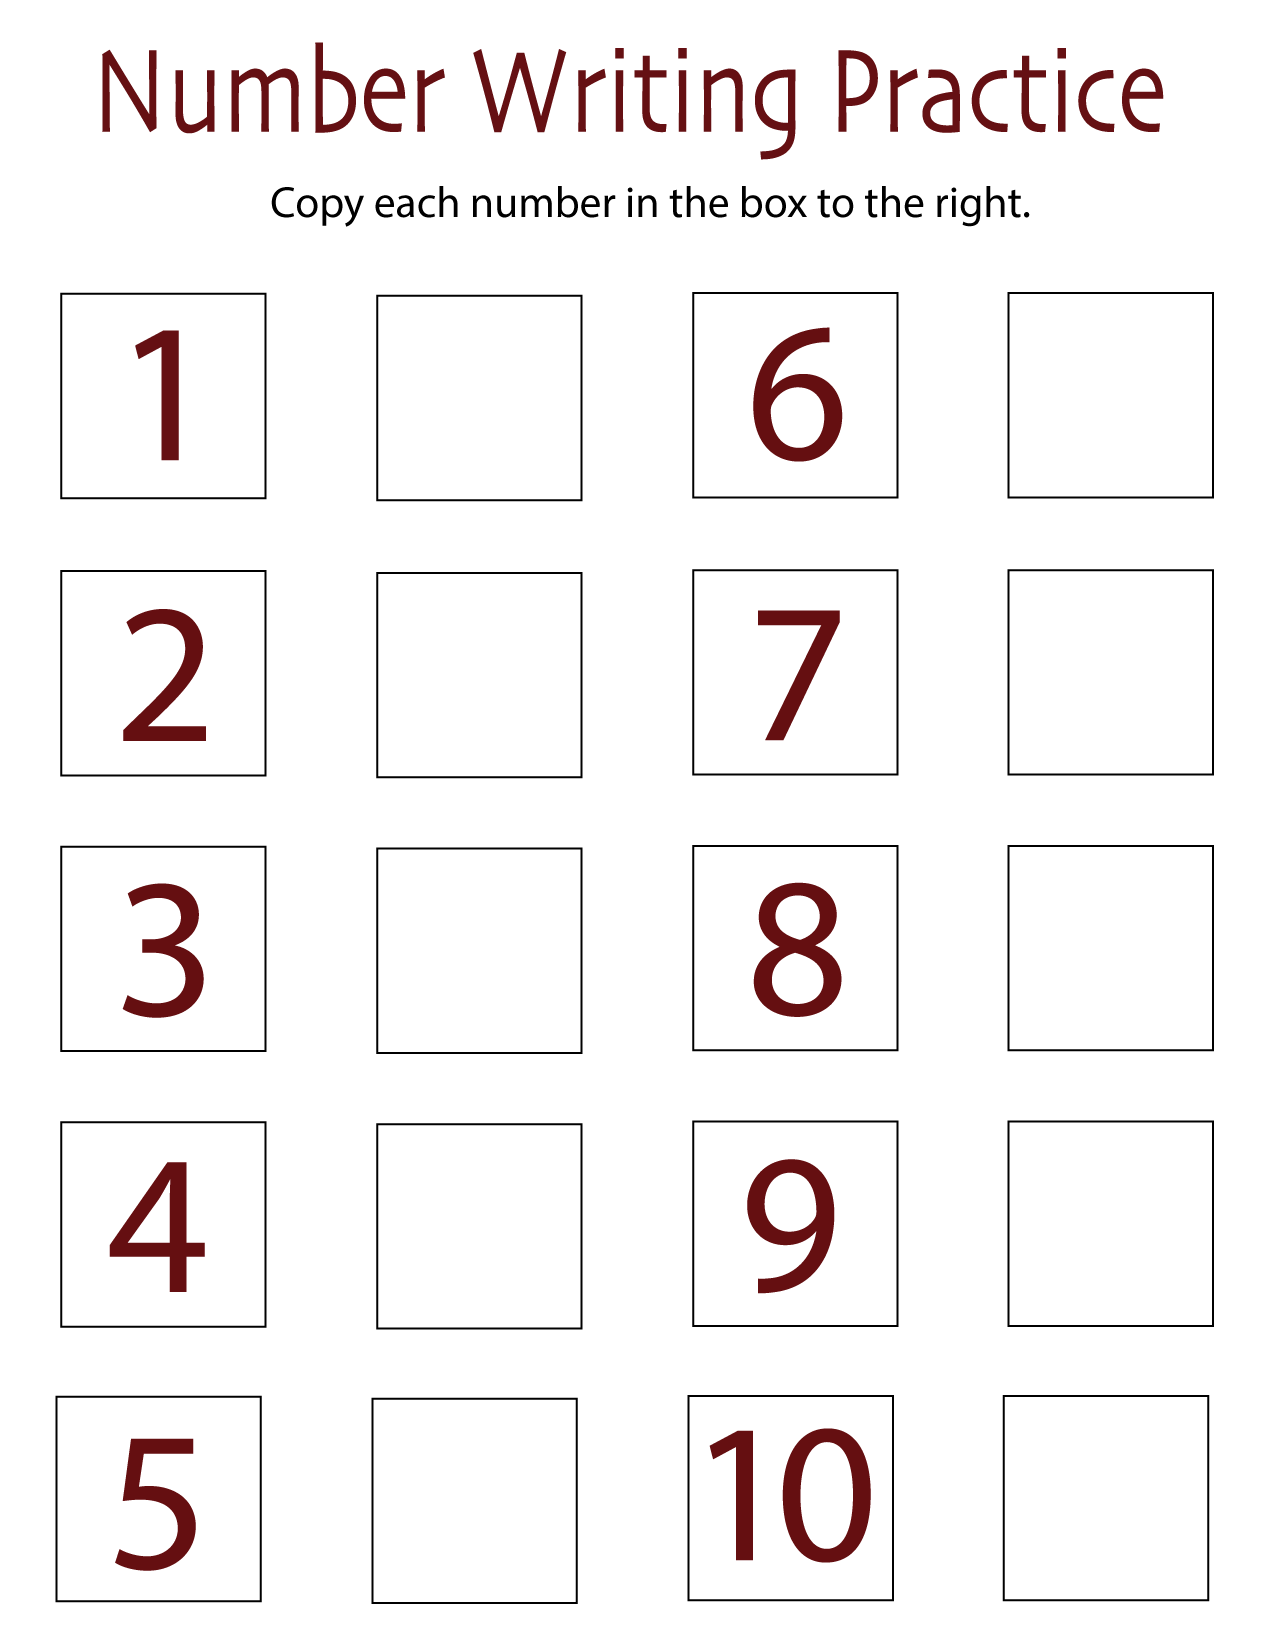 Number-writing practice